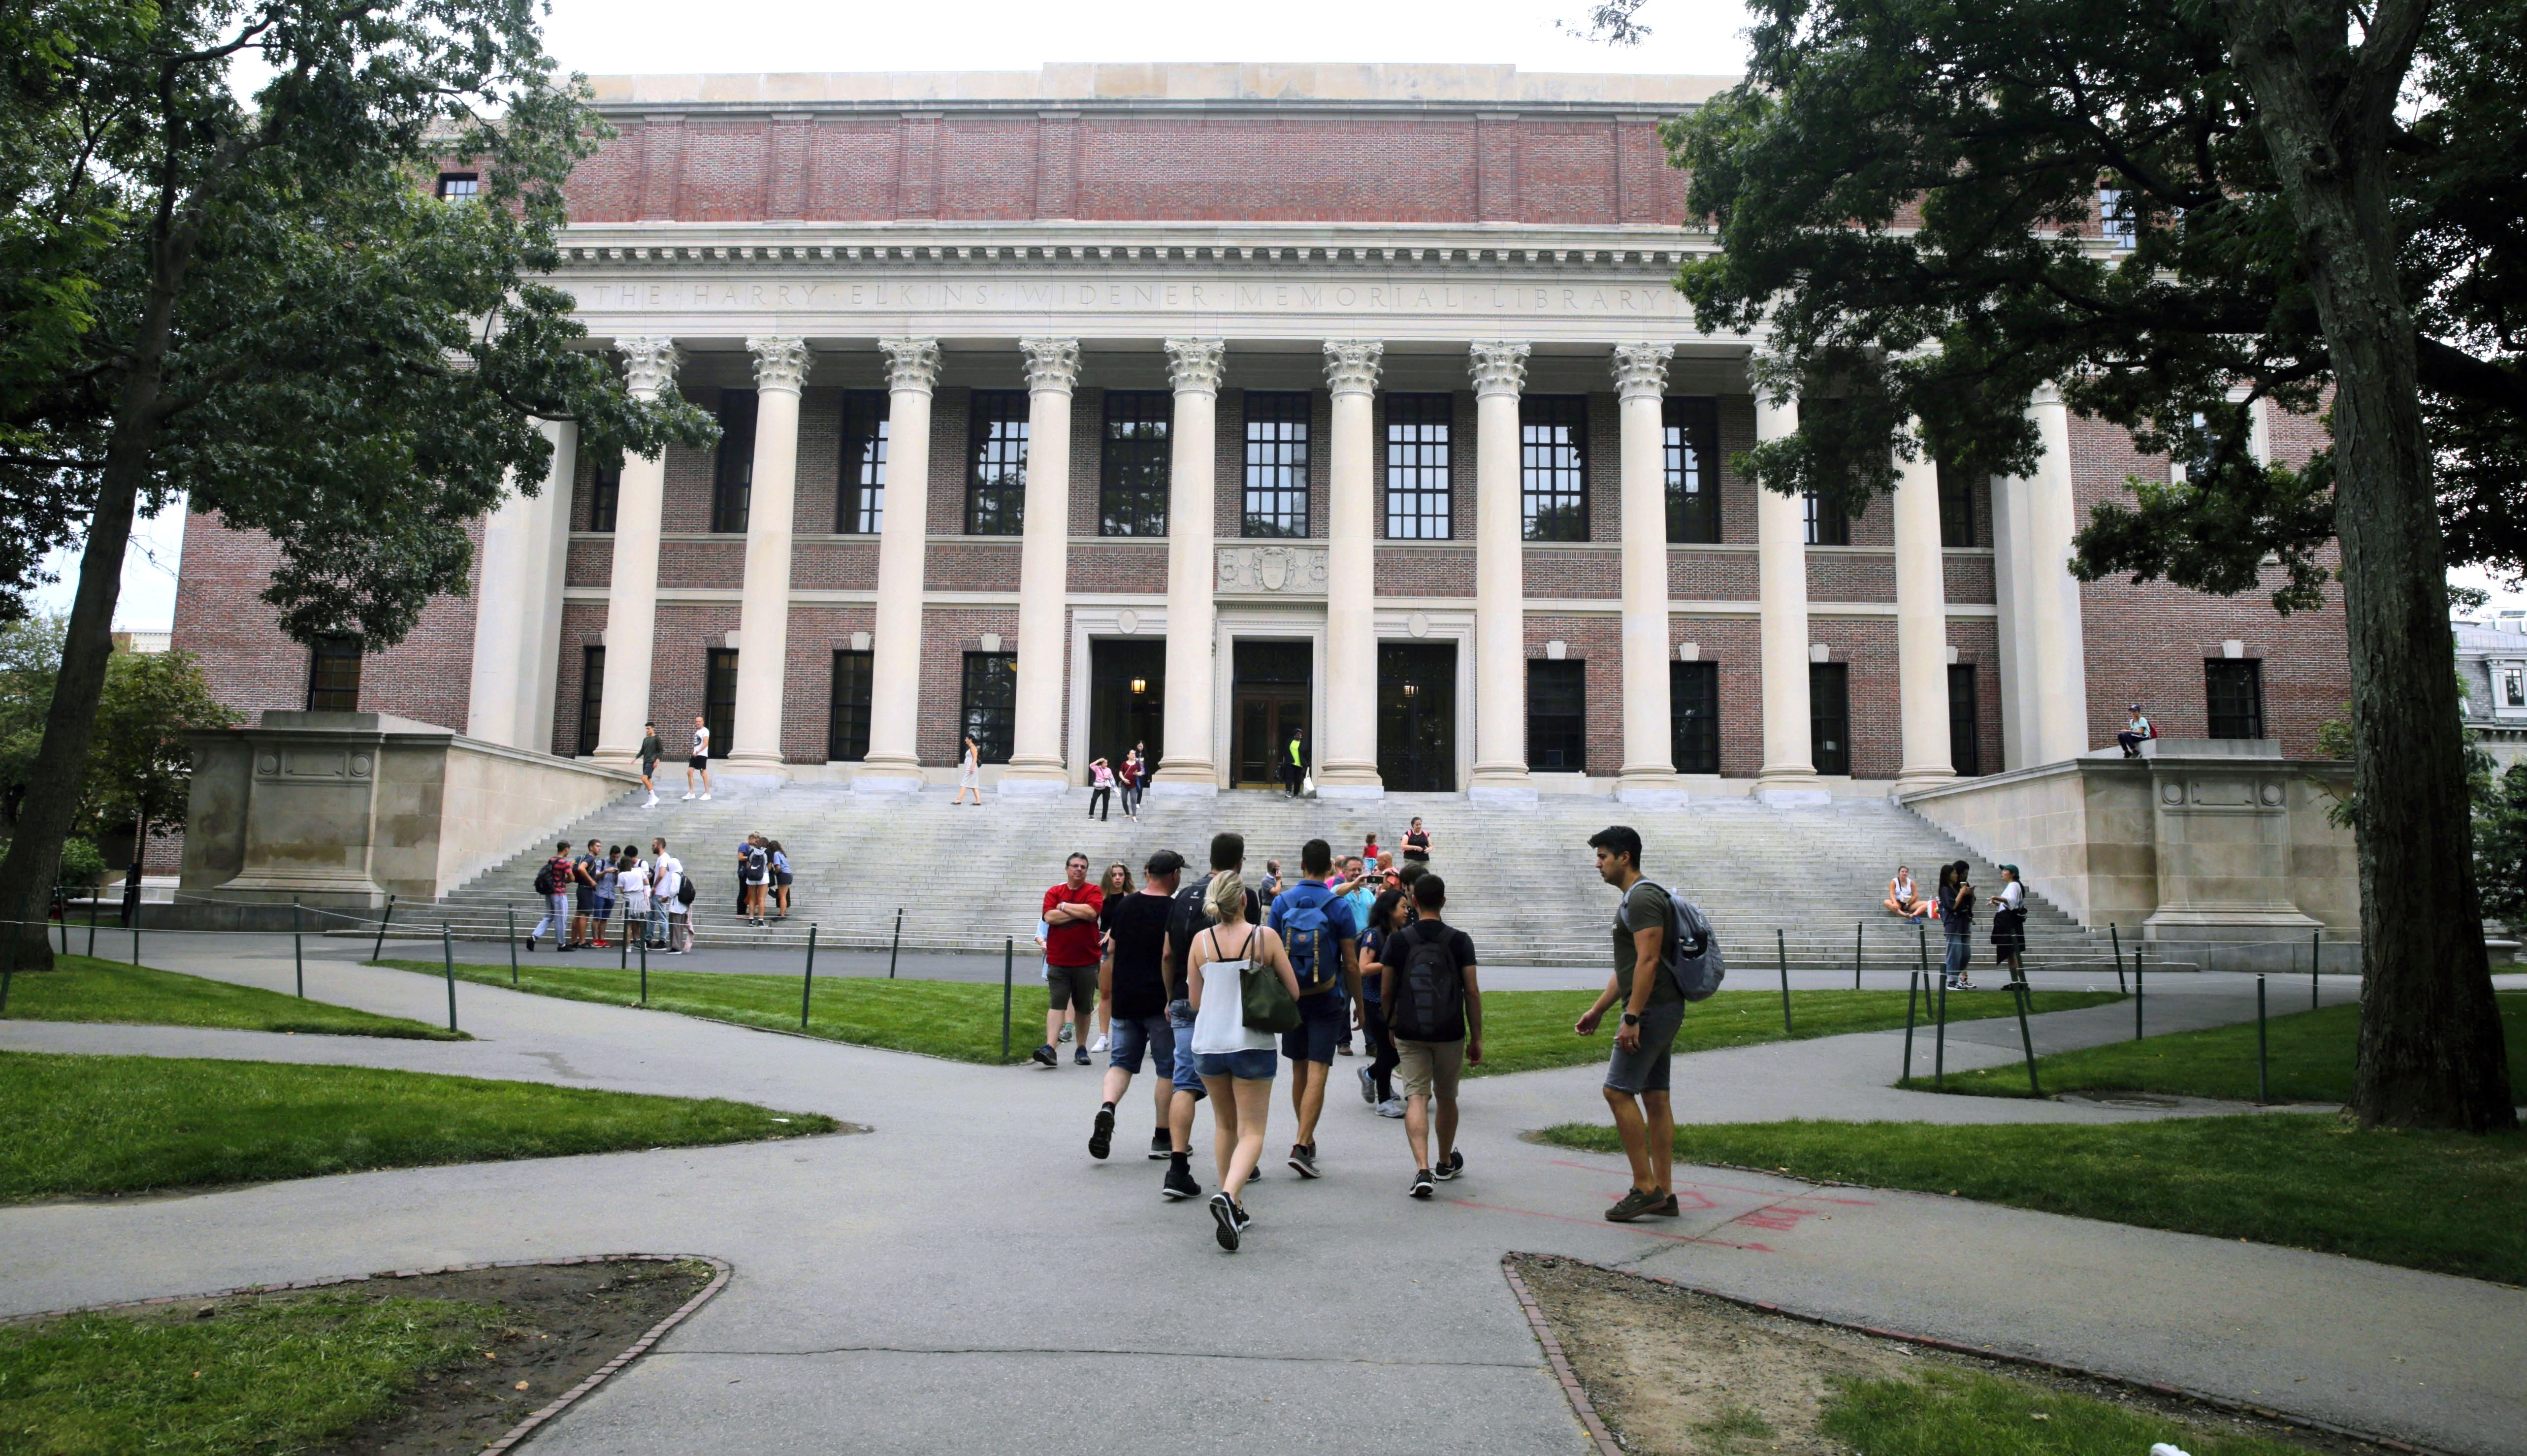 Students walk near the Widener Library in Harvard Yard at Harvard University on August 13, 2019.